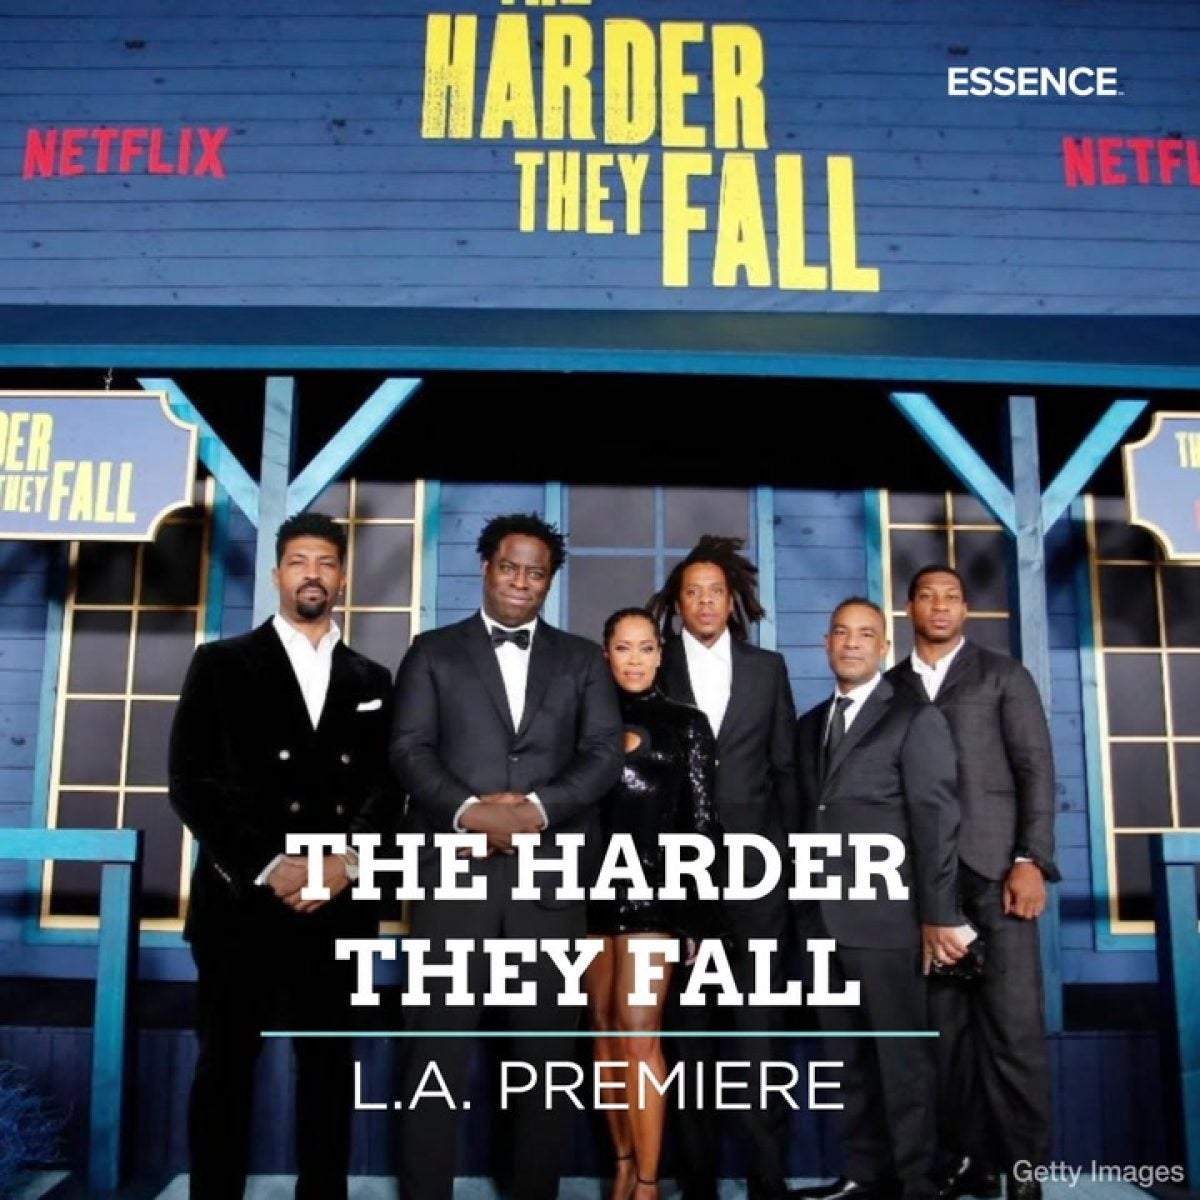 The Harder They Fall Premiere